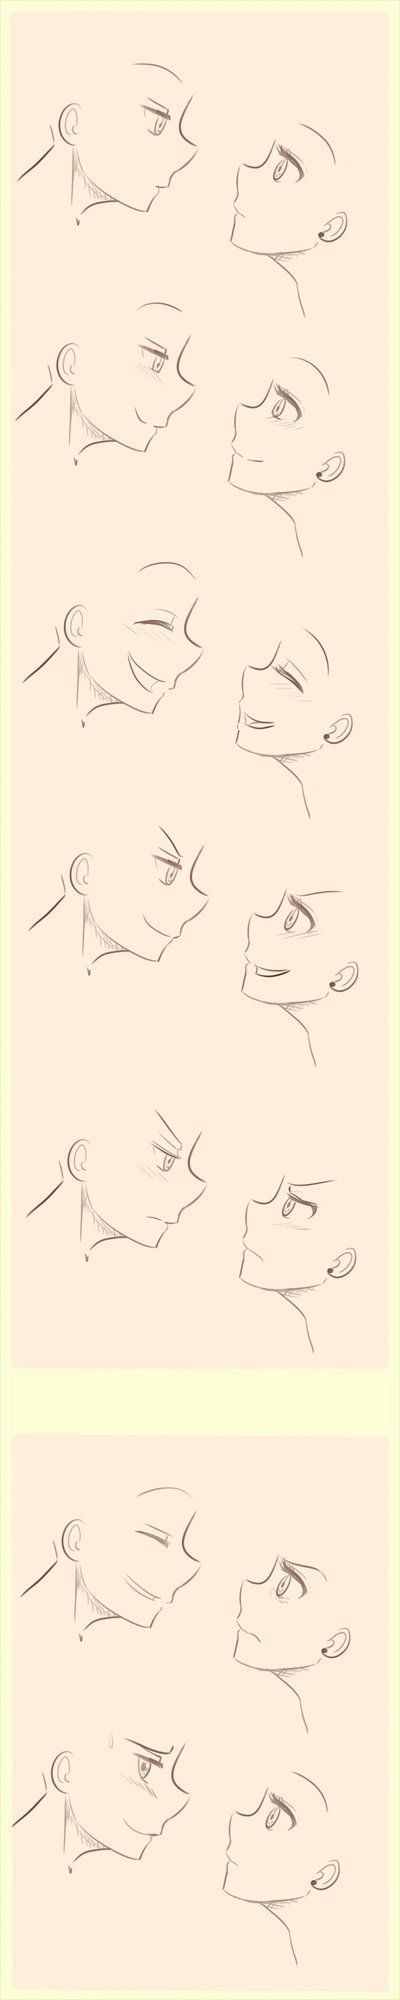 Anime/Manga Side profile expressions reference. by littlesomethings on DeviantArt